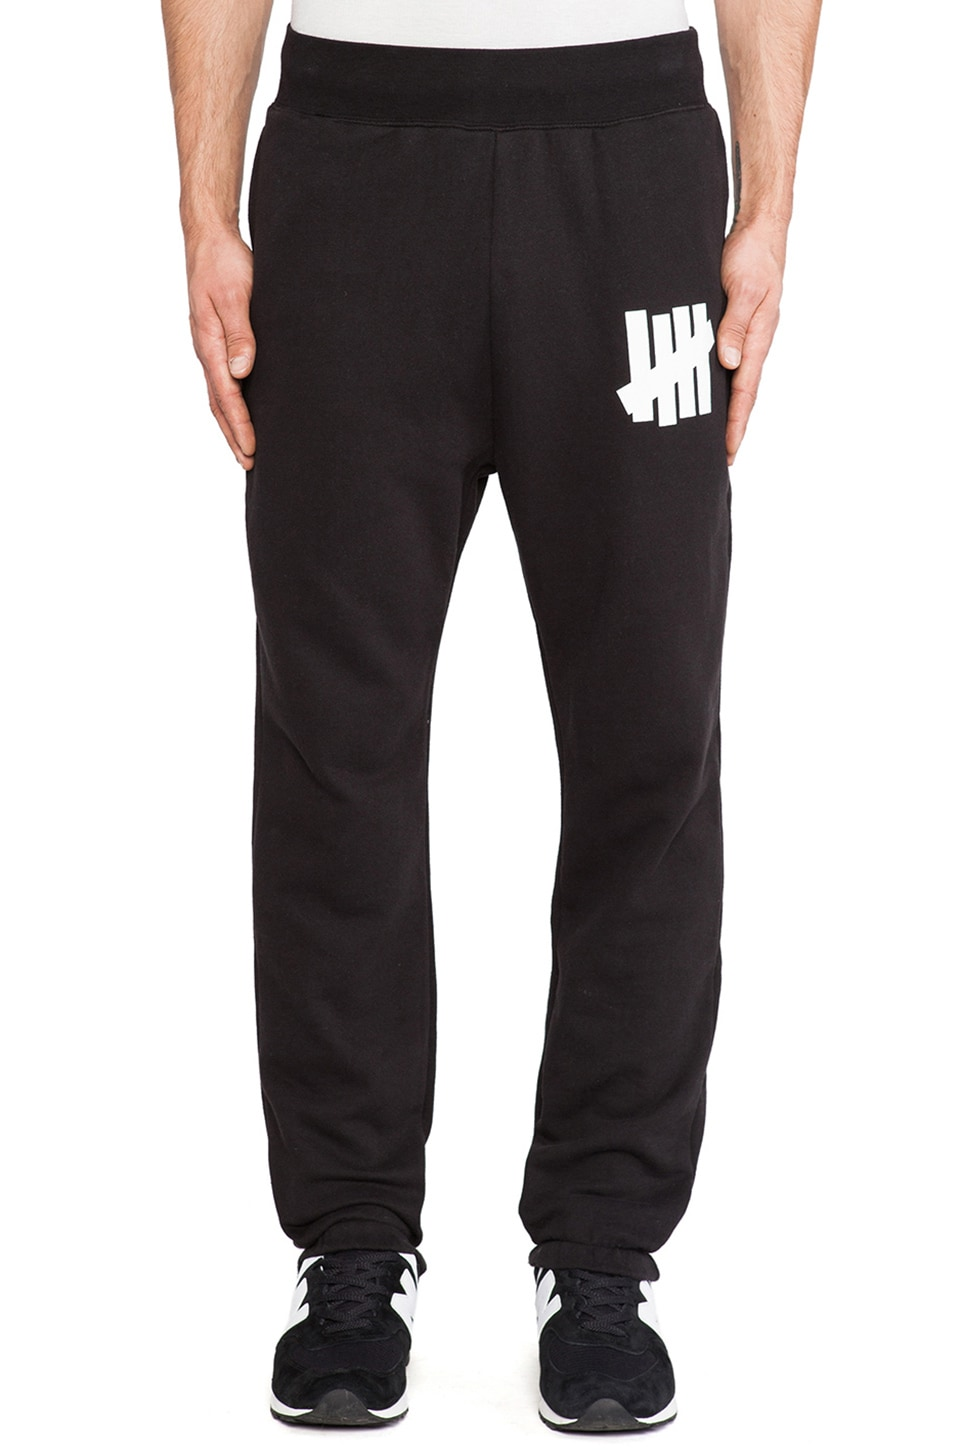 Undefeated 5 Strike Basic Sweatpant in Black